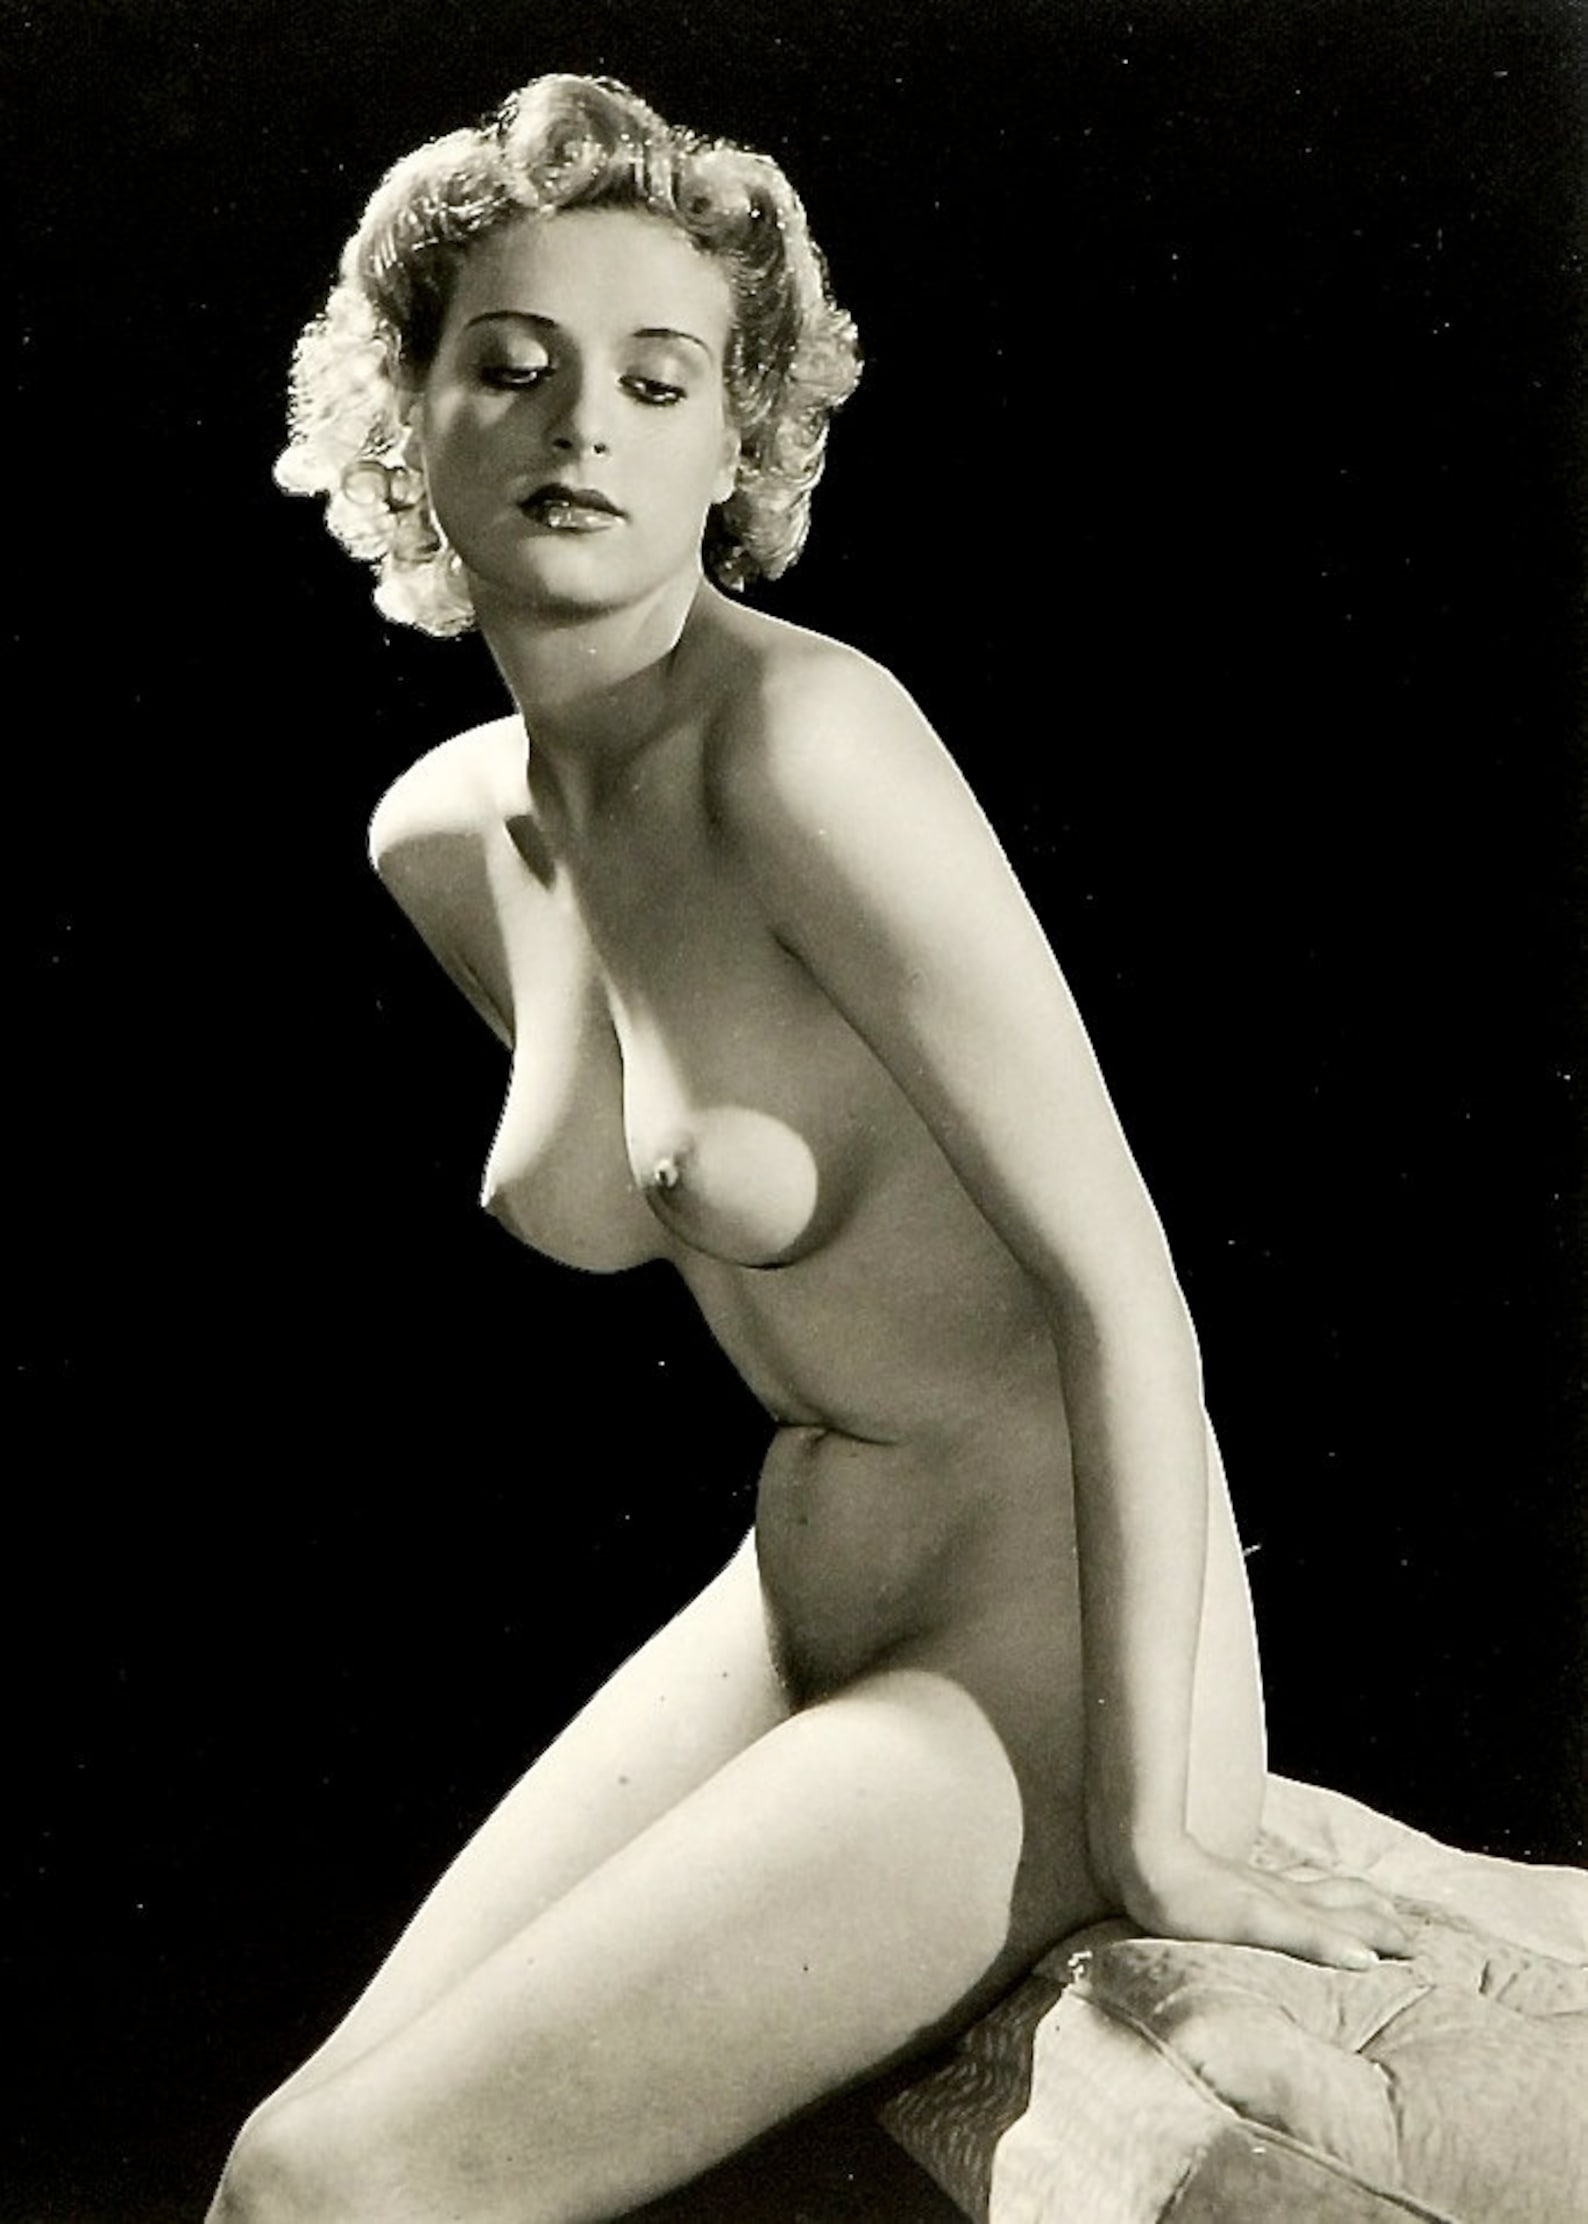 Classy And Classic, Nude Art Photography Curated By Photographer Ww Images